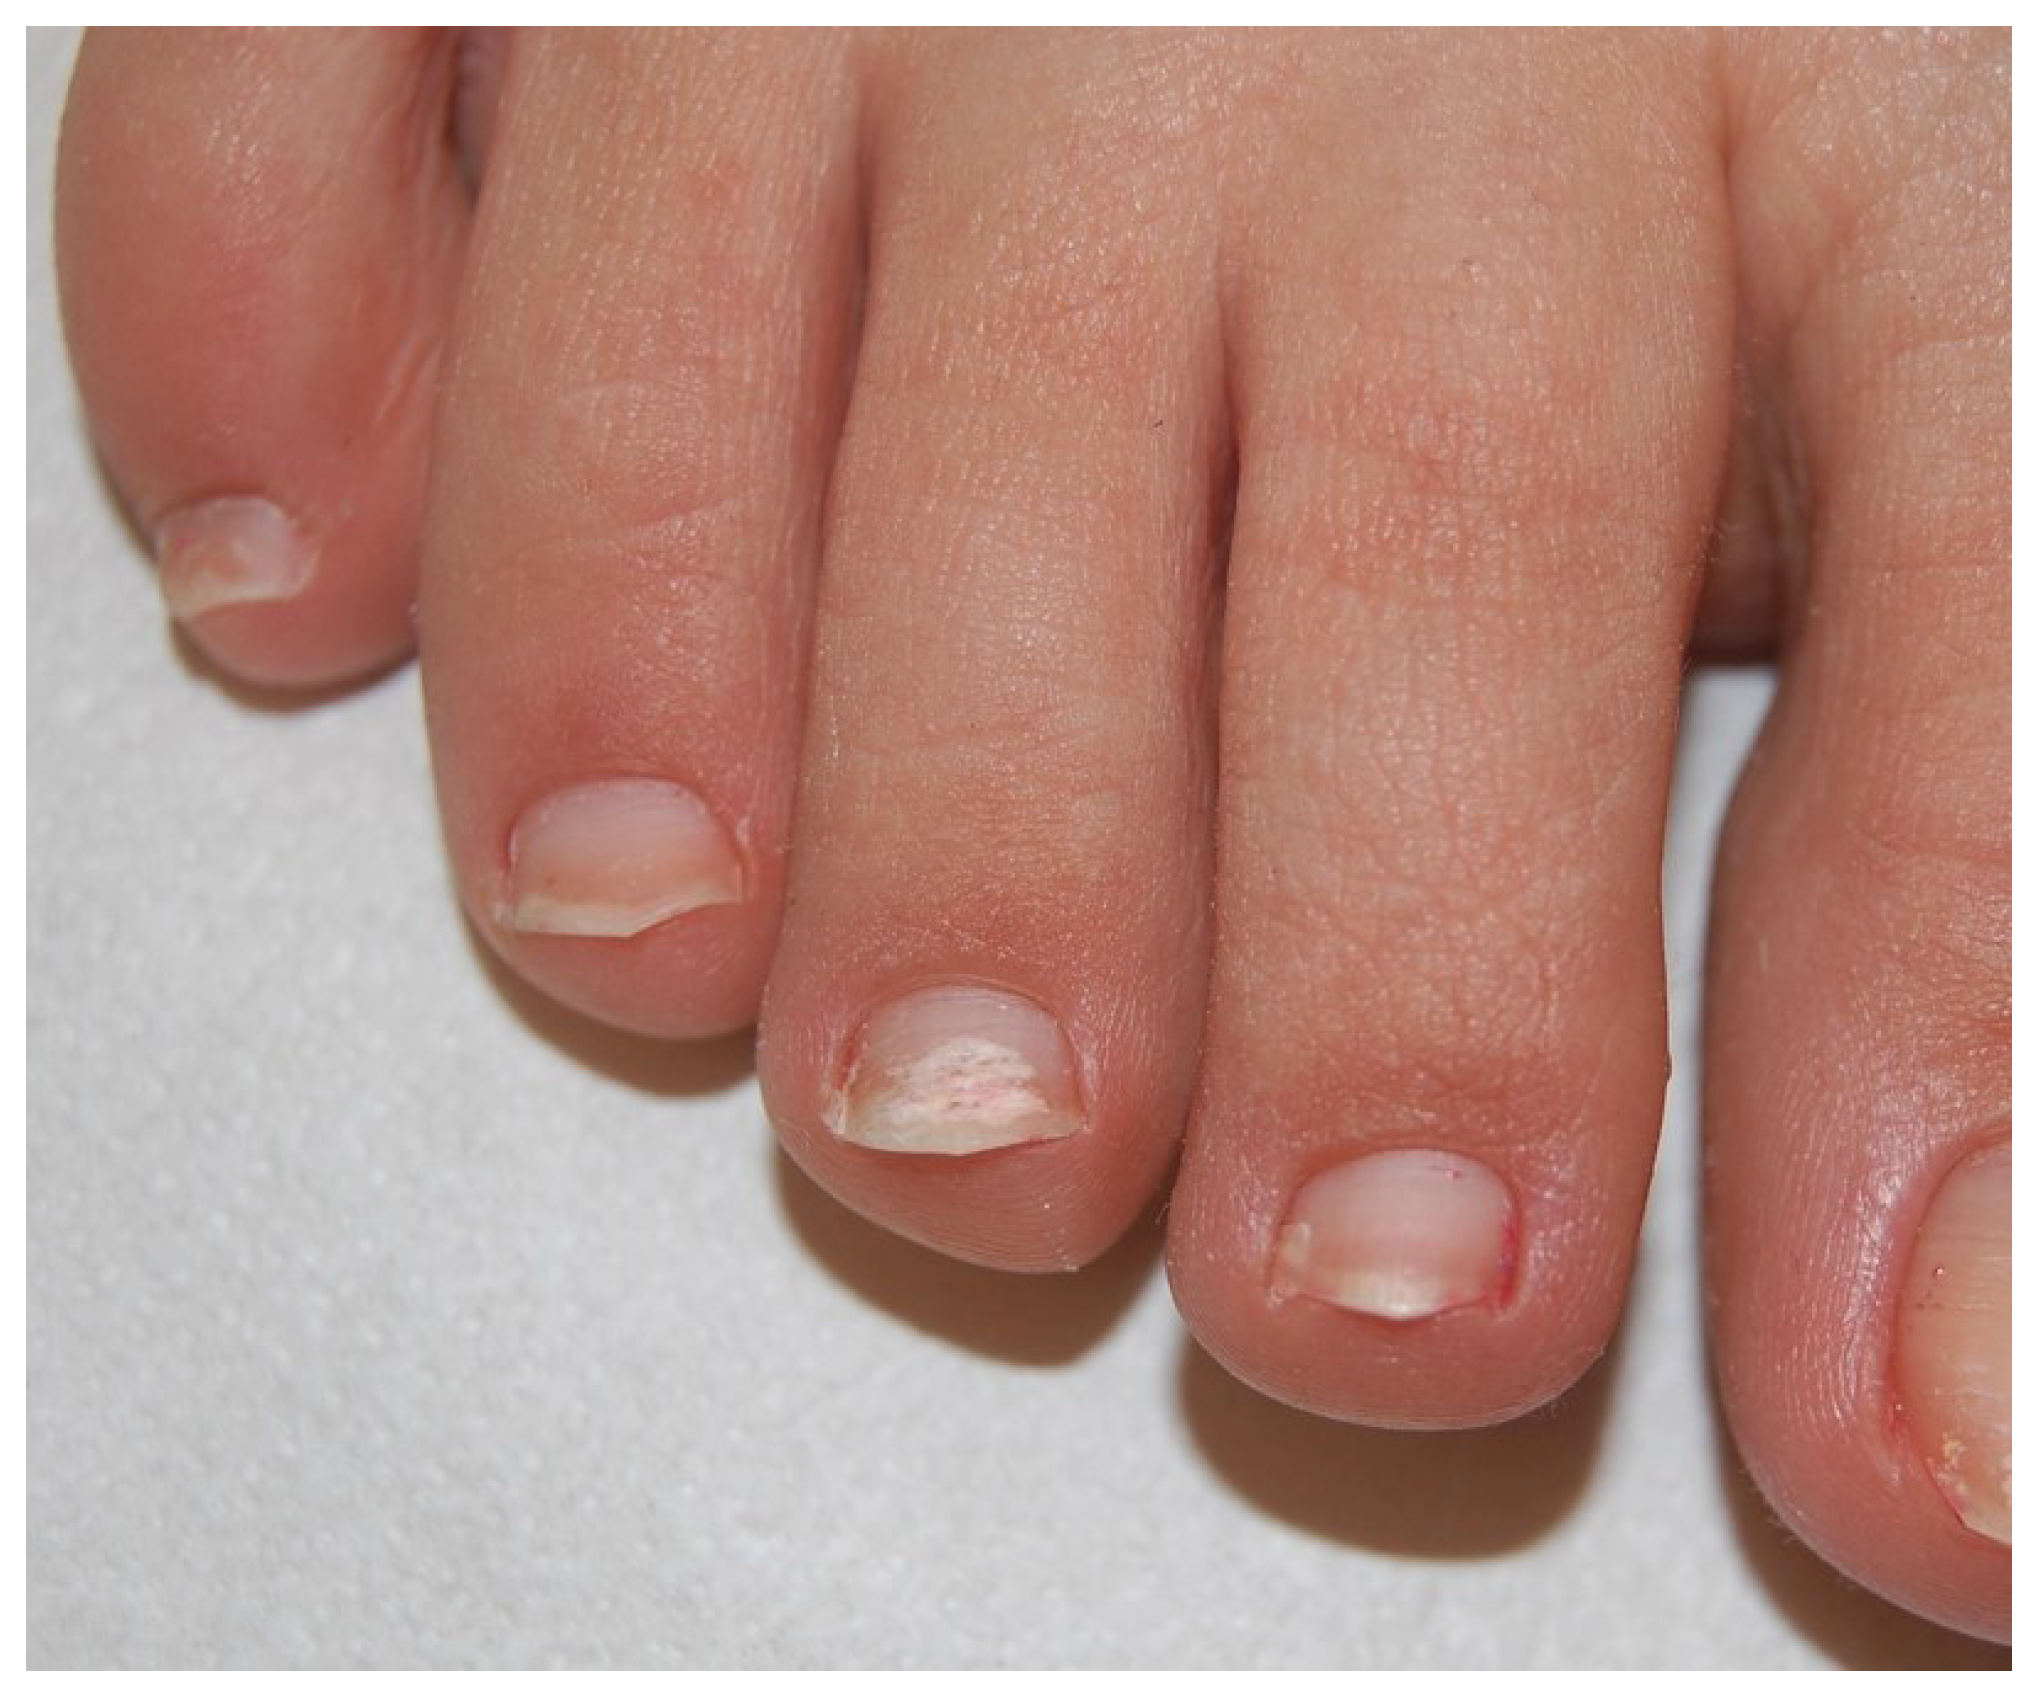 JoF | Free Full-Text | Onychomycosis: A Review | HTML